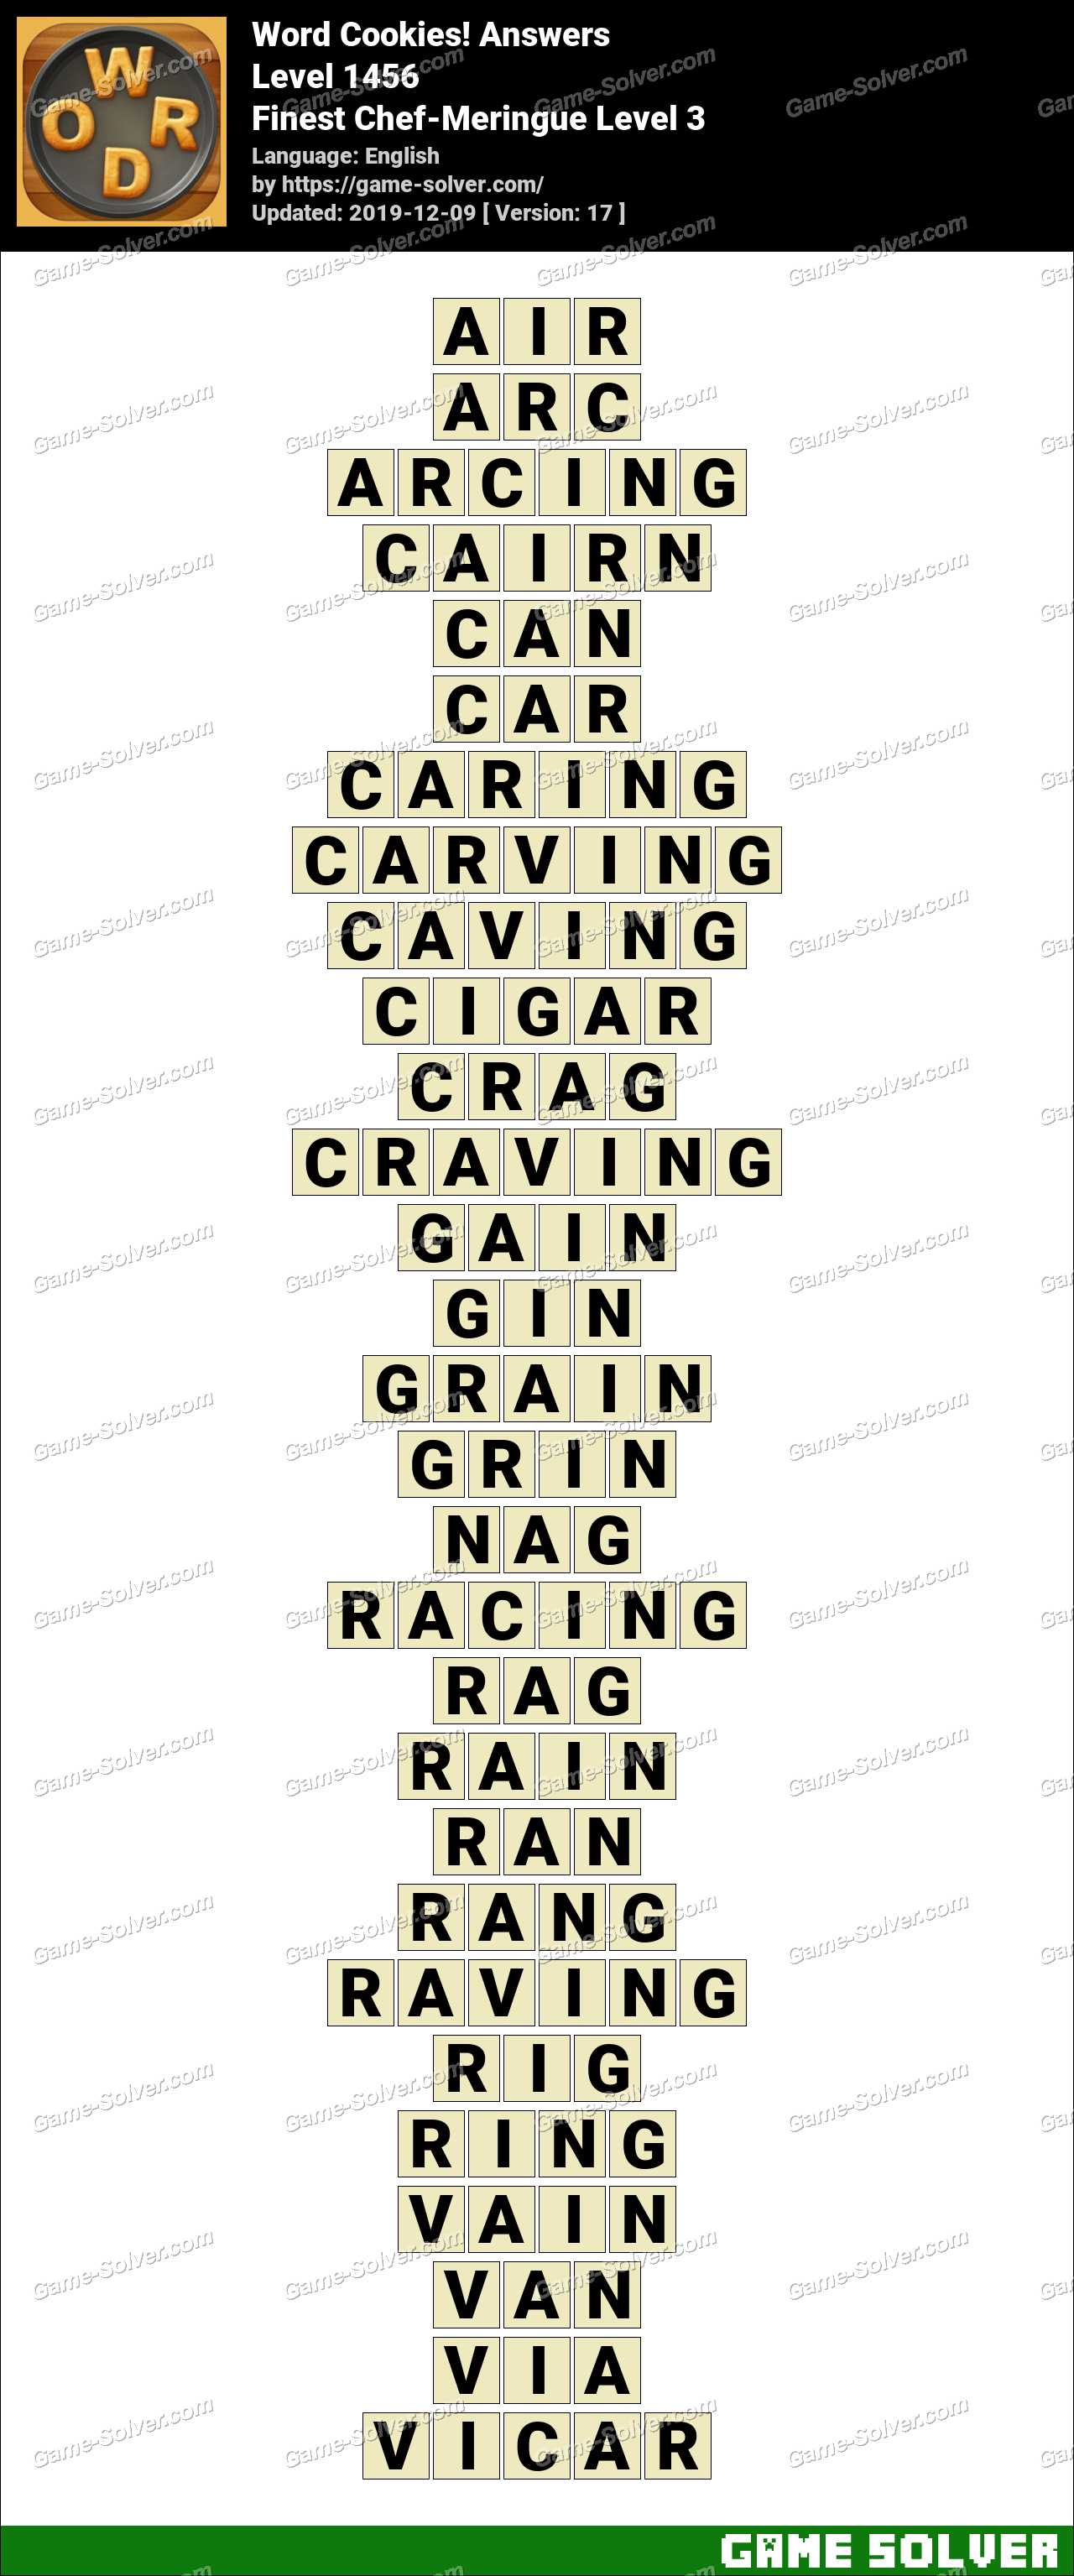 Word Cookies Finest Chef-Meringue Level 3 Answers